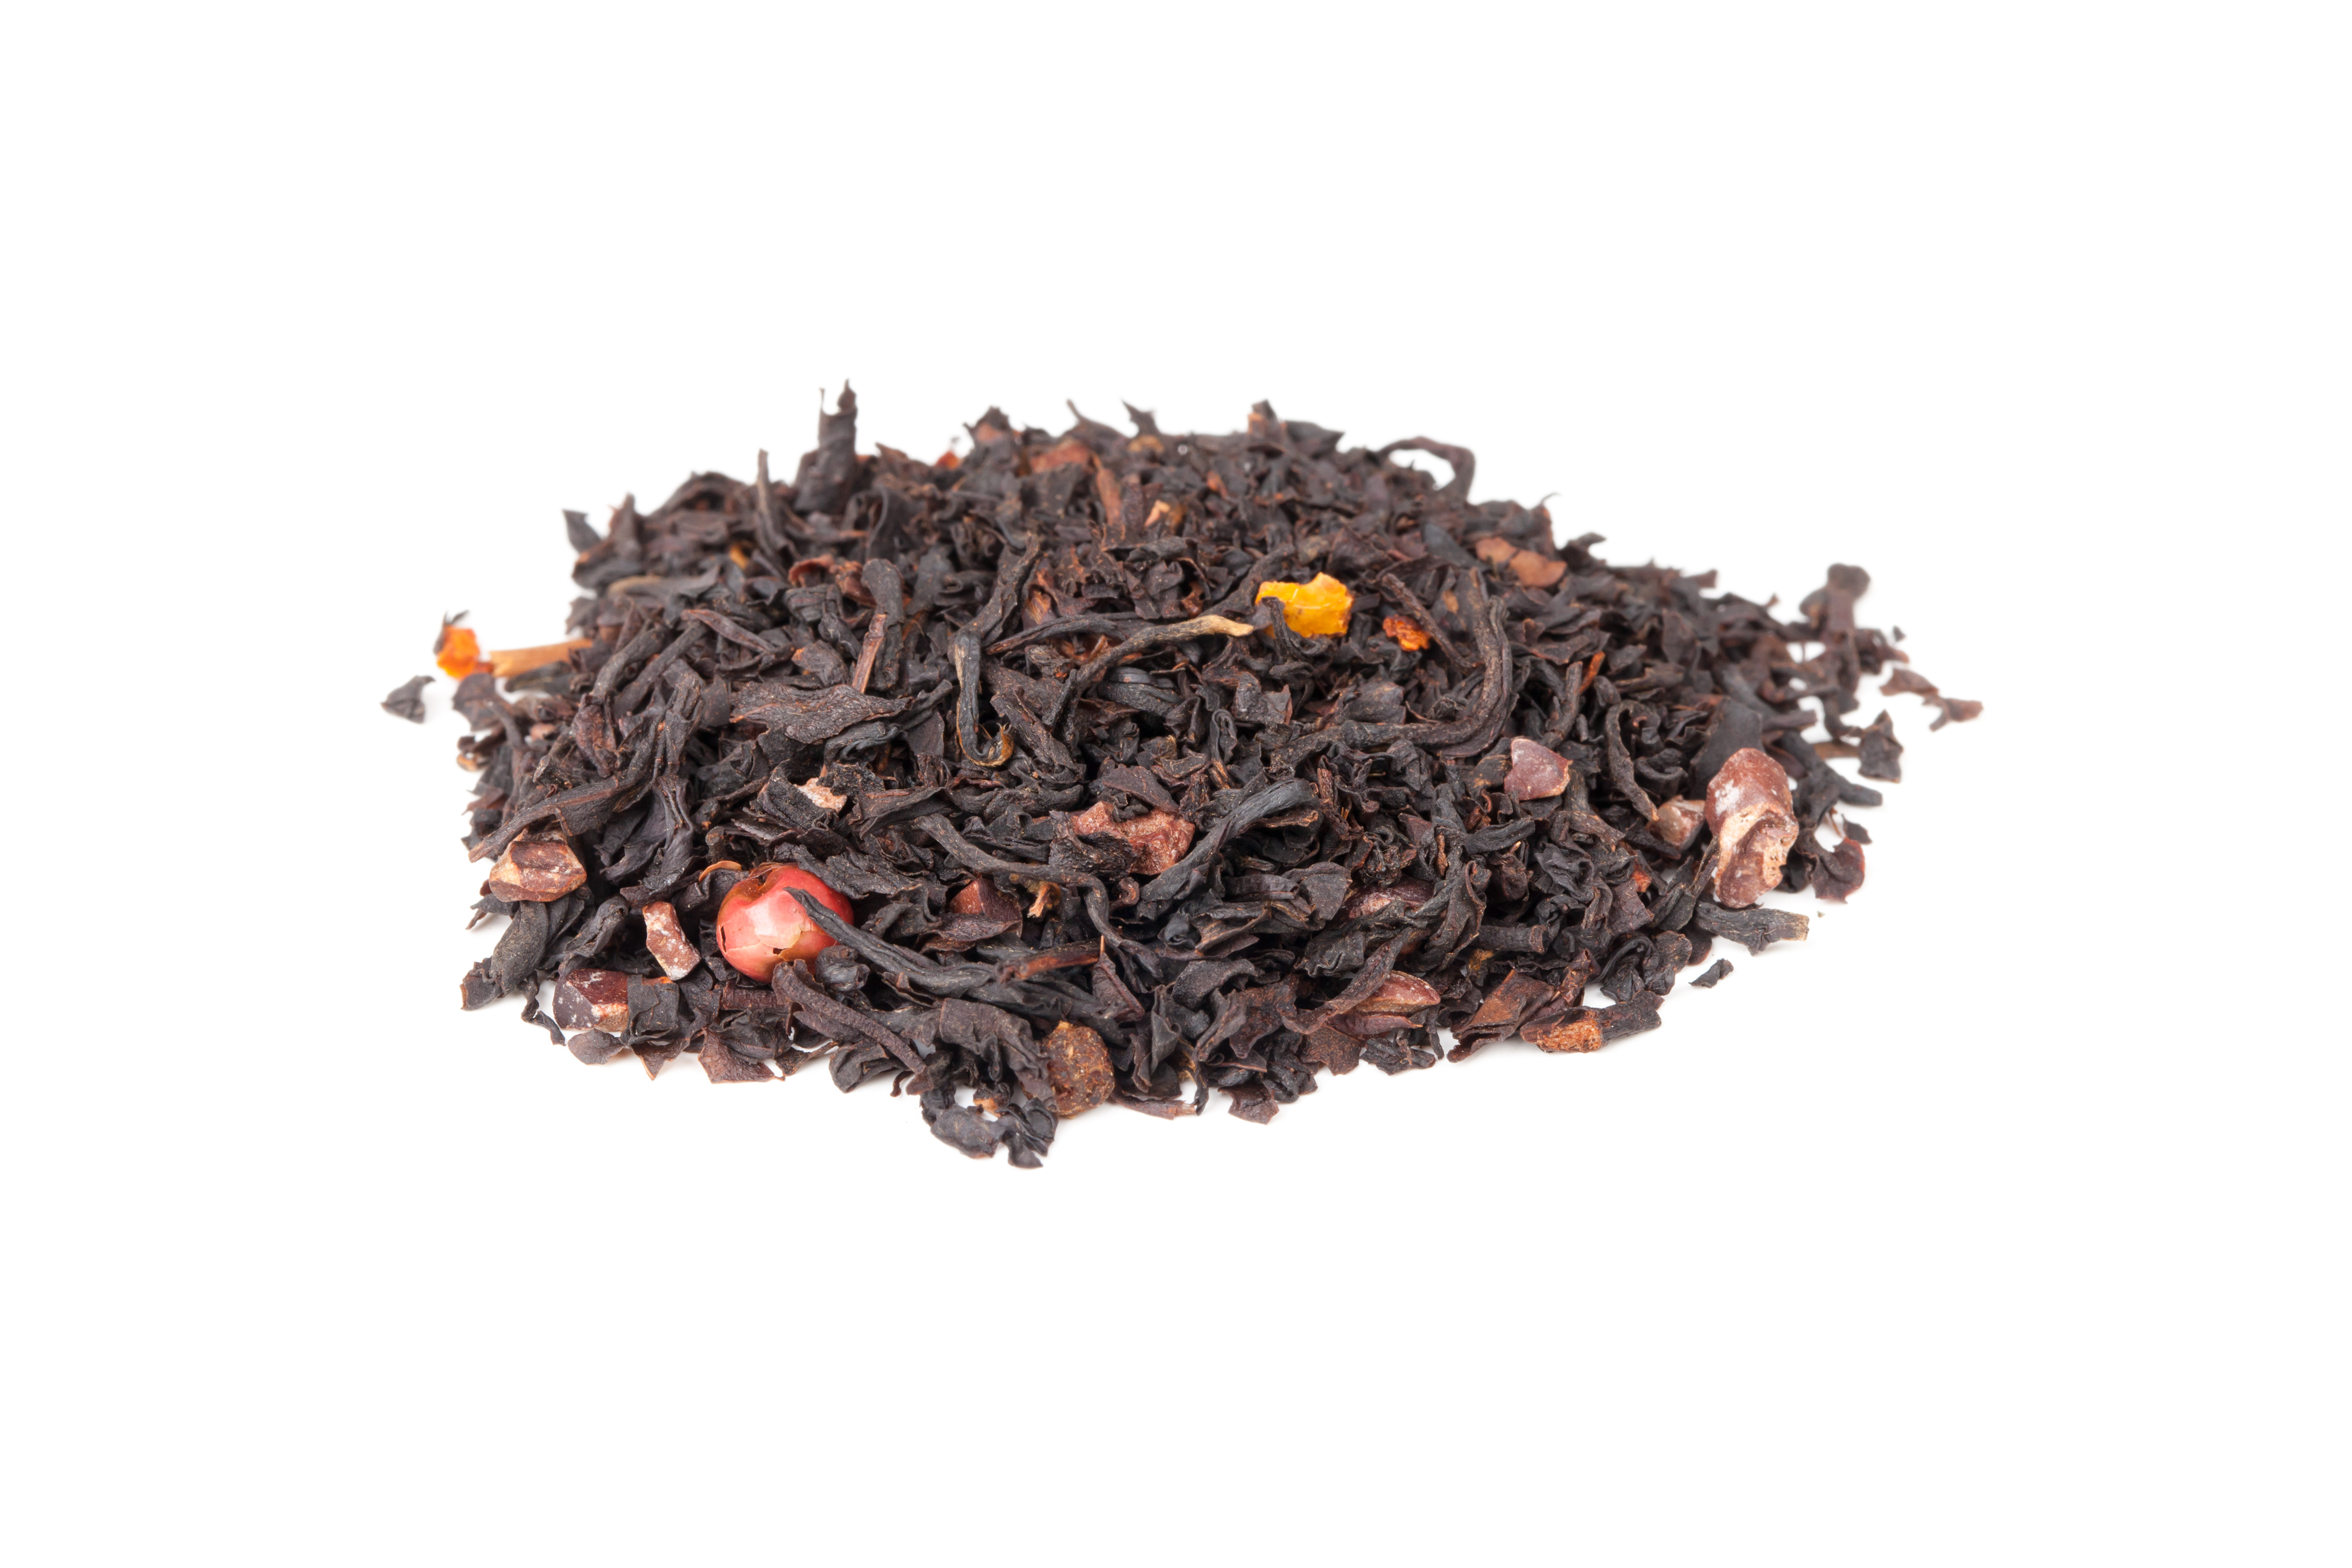 Mixed black Truffle spicy tea isolated on white